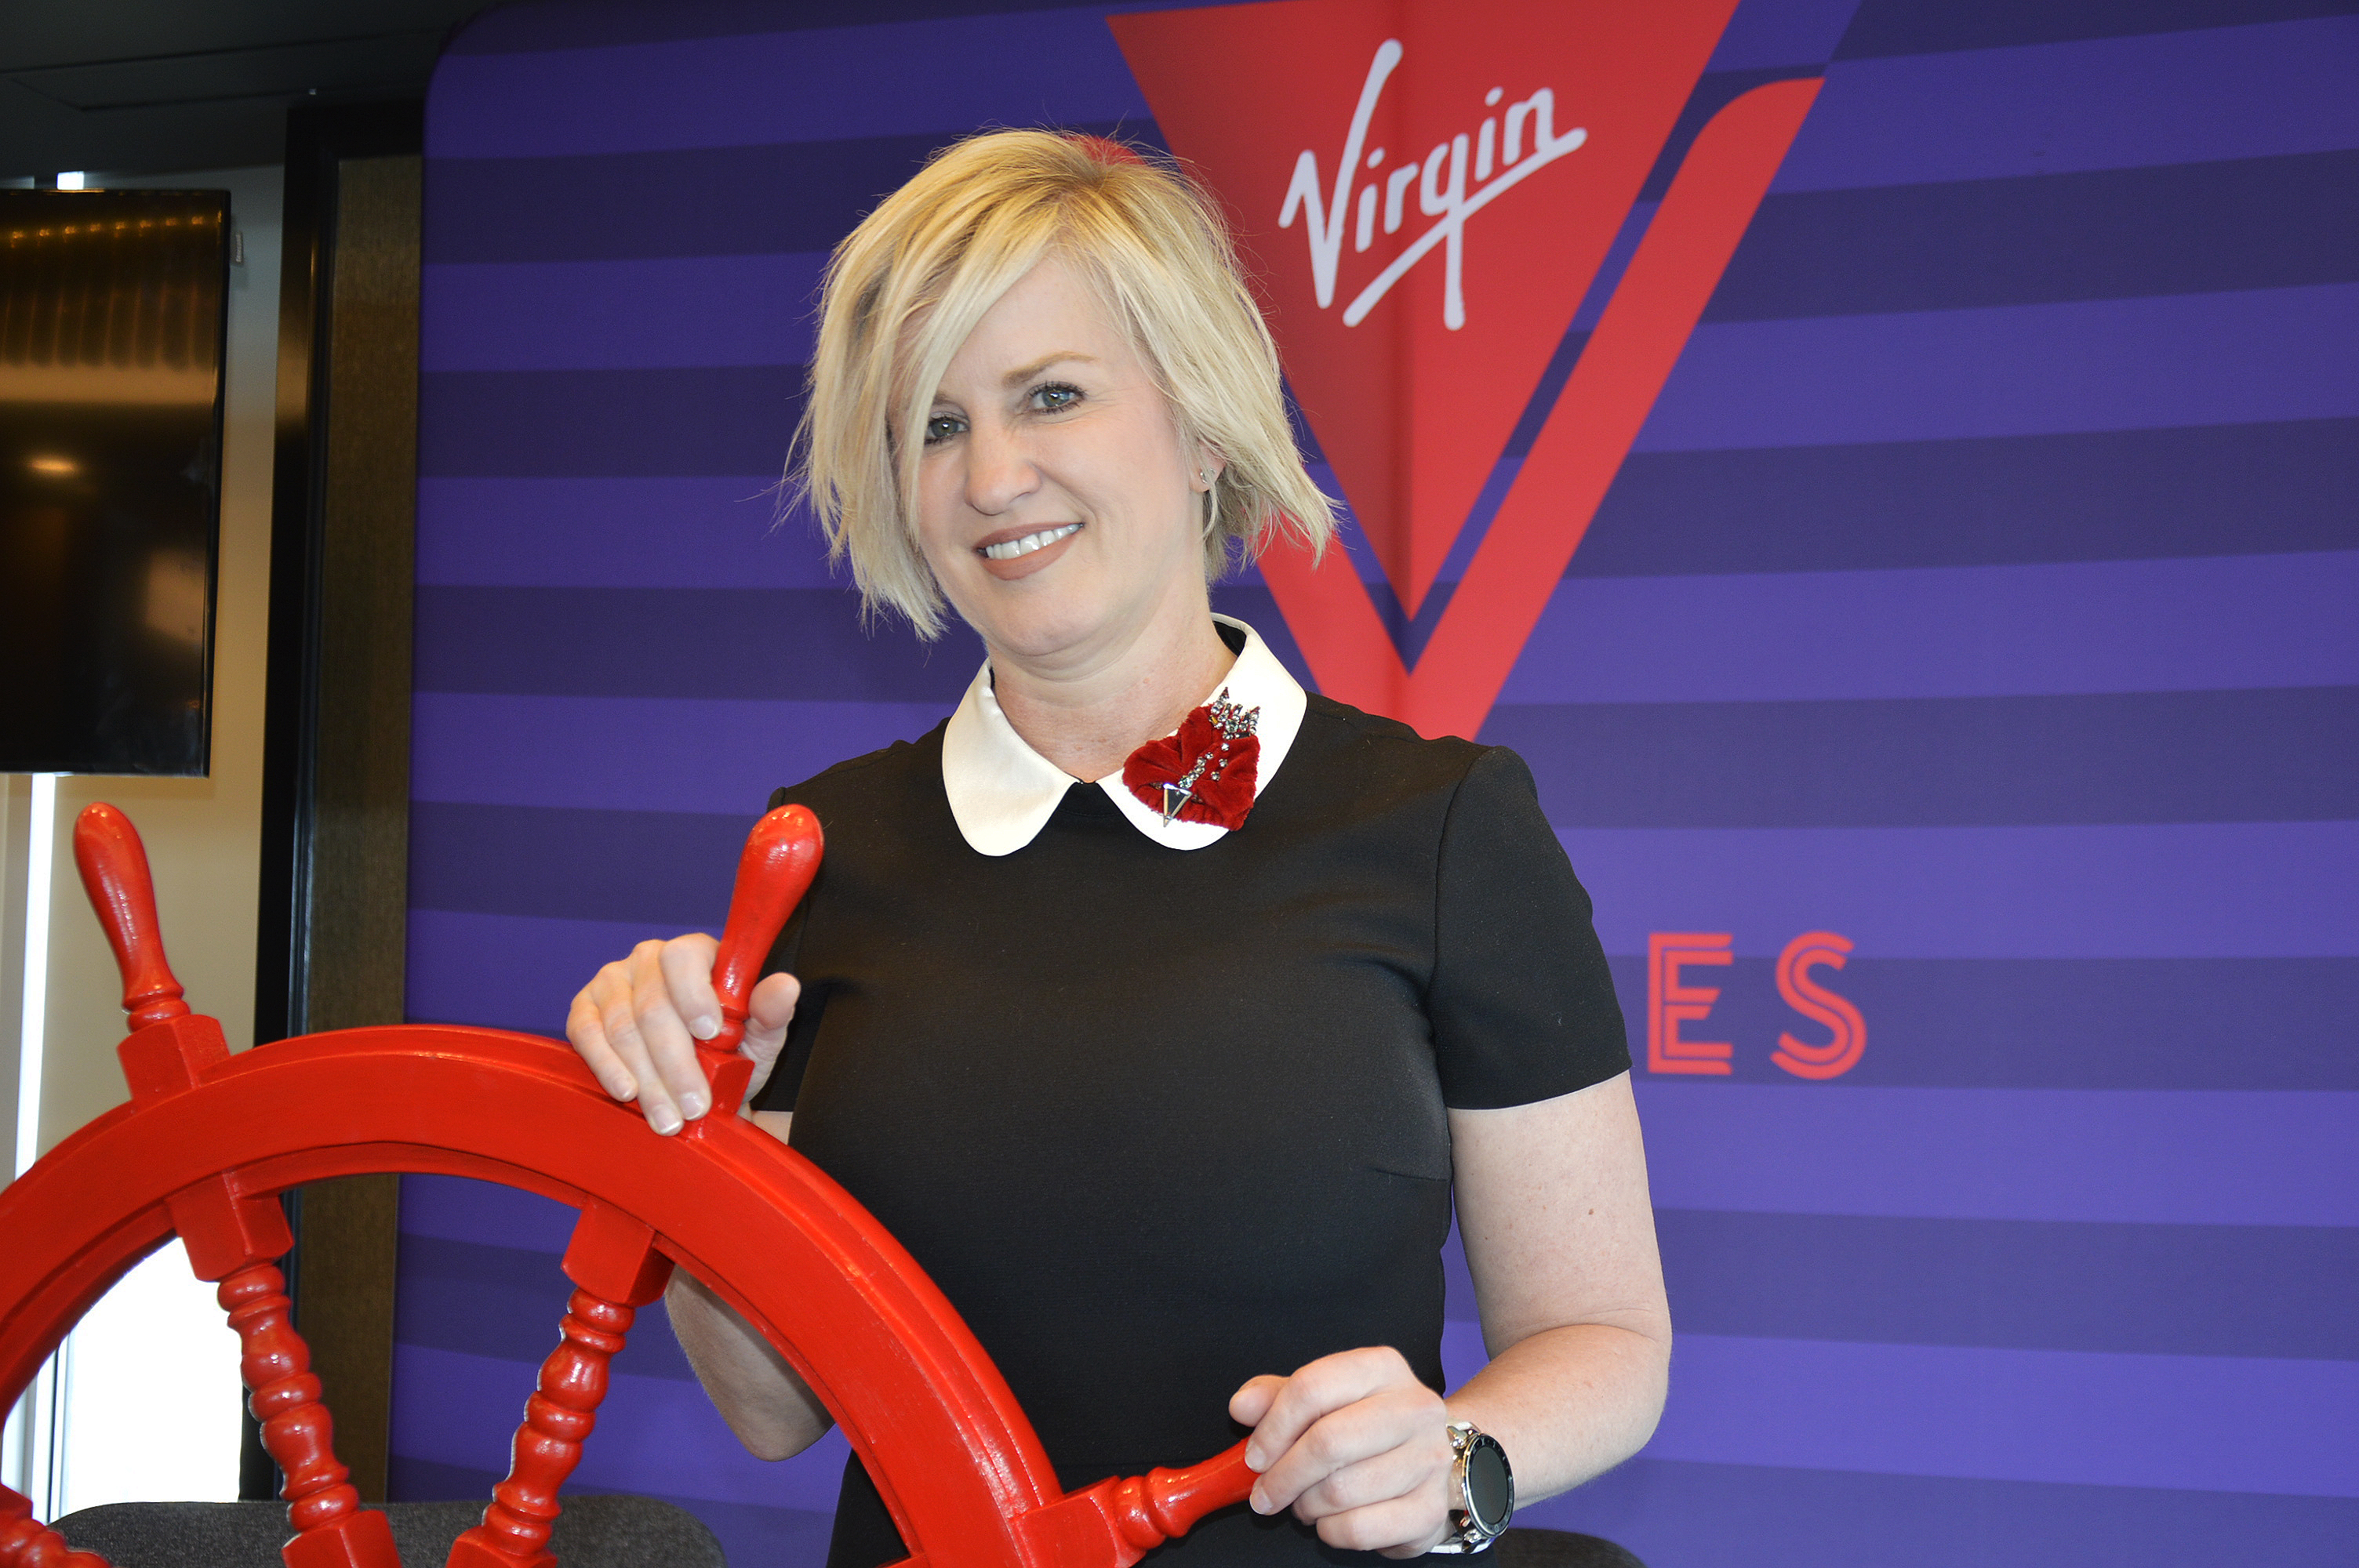 Stacy Shaw, Virgin Voyages' VP of sales and business development